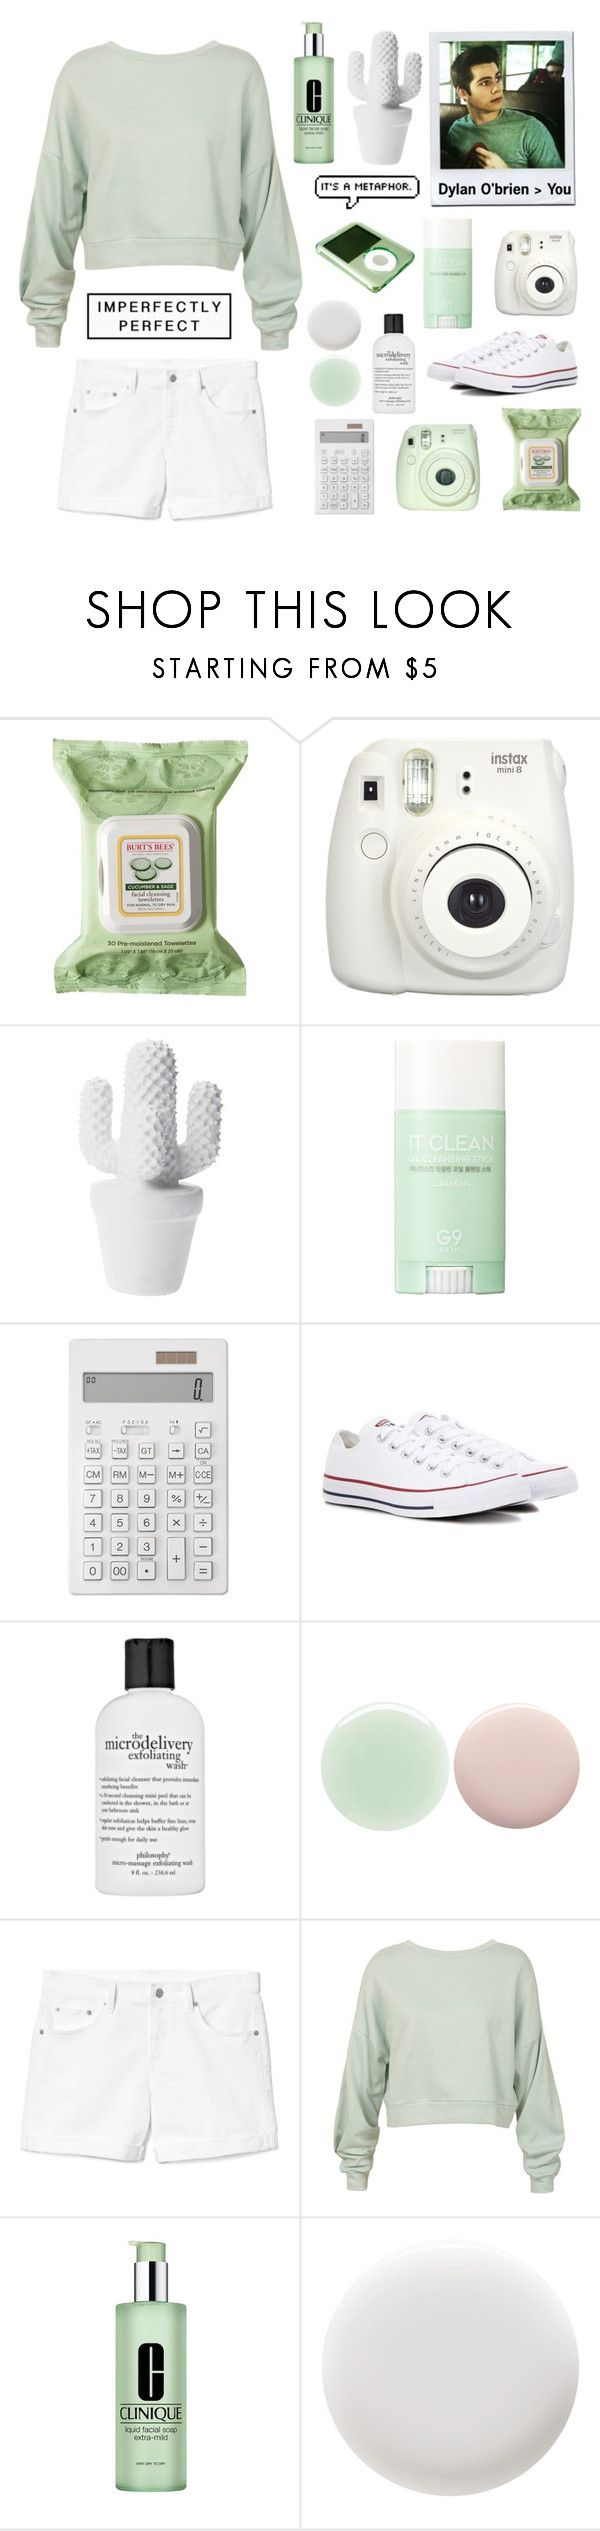 """""""RTD!"""" by switchkid ❤ liked on Polyvore featuring Burt's Bees, Fujifilm, Forever 21, Muji, Converse, philosophy, Nails Inc., Gap, Sans Souci and Clinique"""